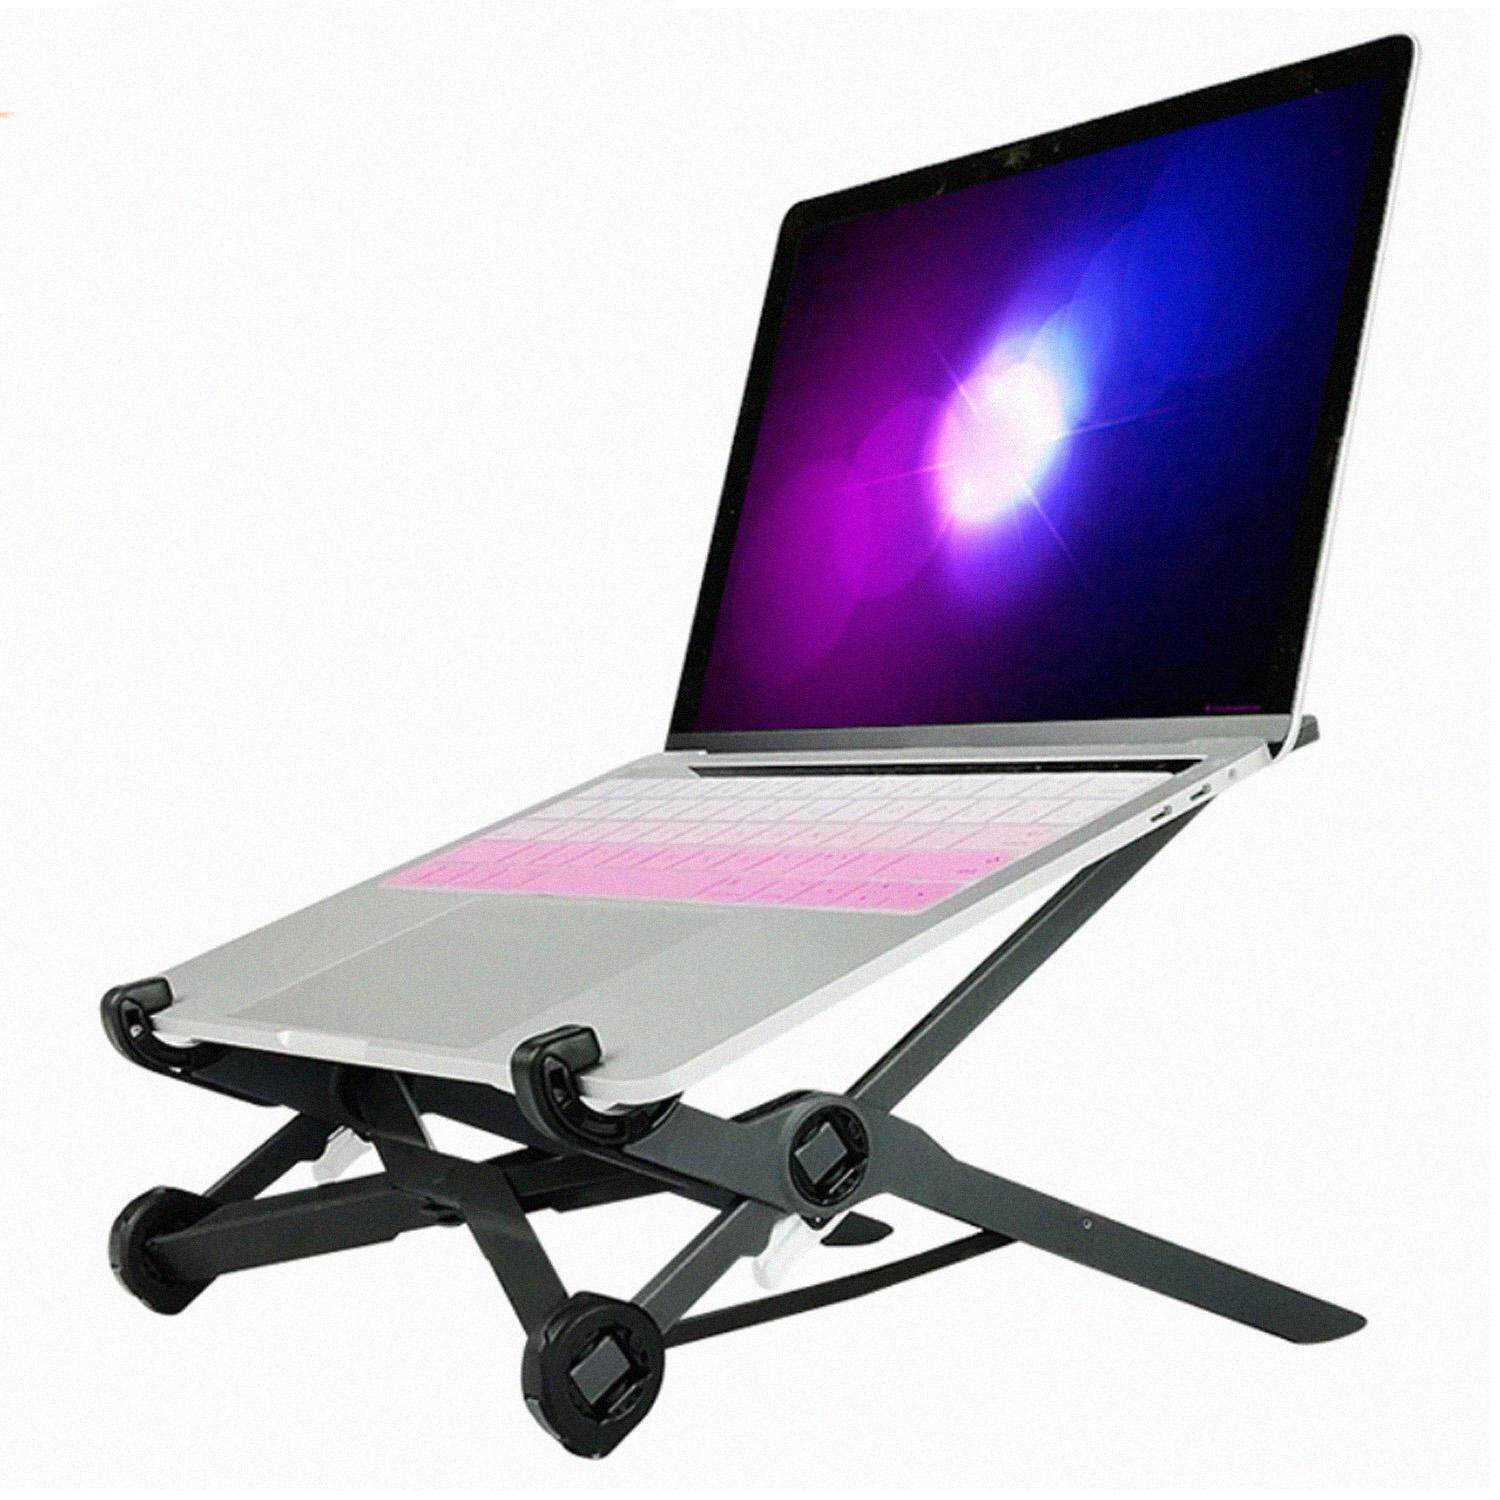 Portable Foldable Cooling Bracket Stand Holder with Adjustable Height Compatible with Samsung Lenovo Dell Notebook Laptop Malaysia